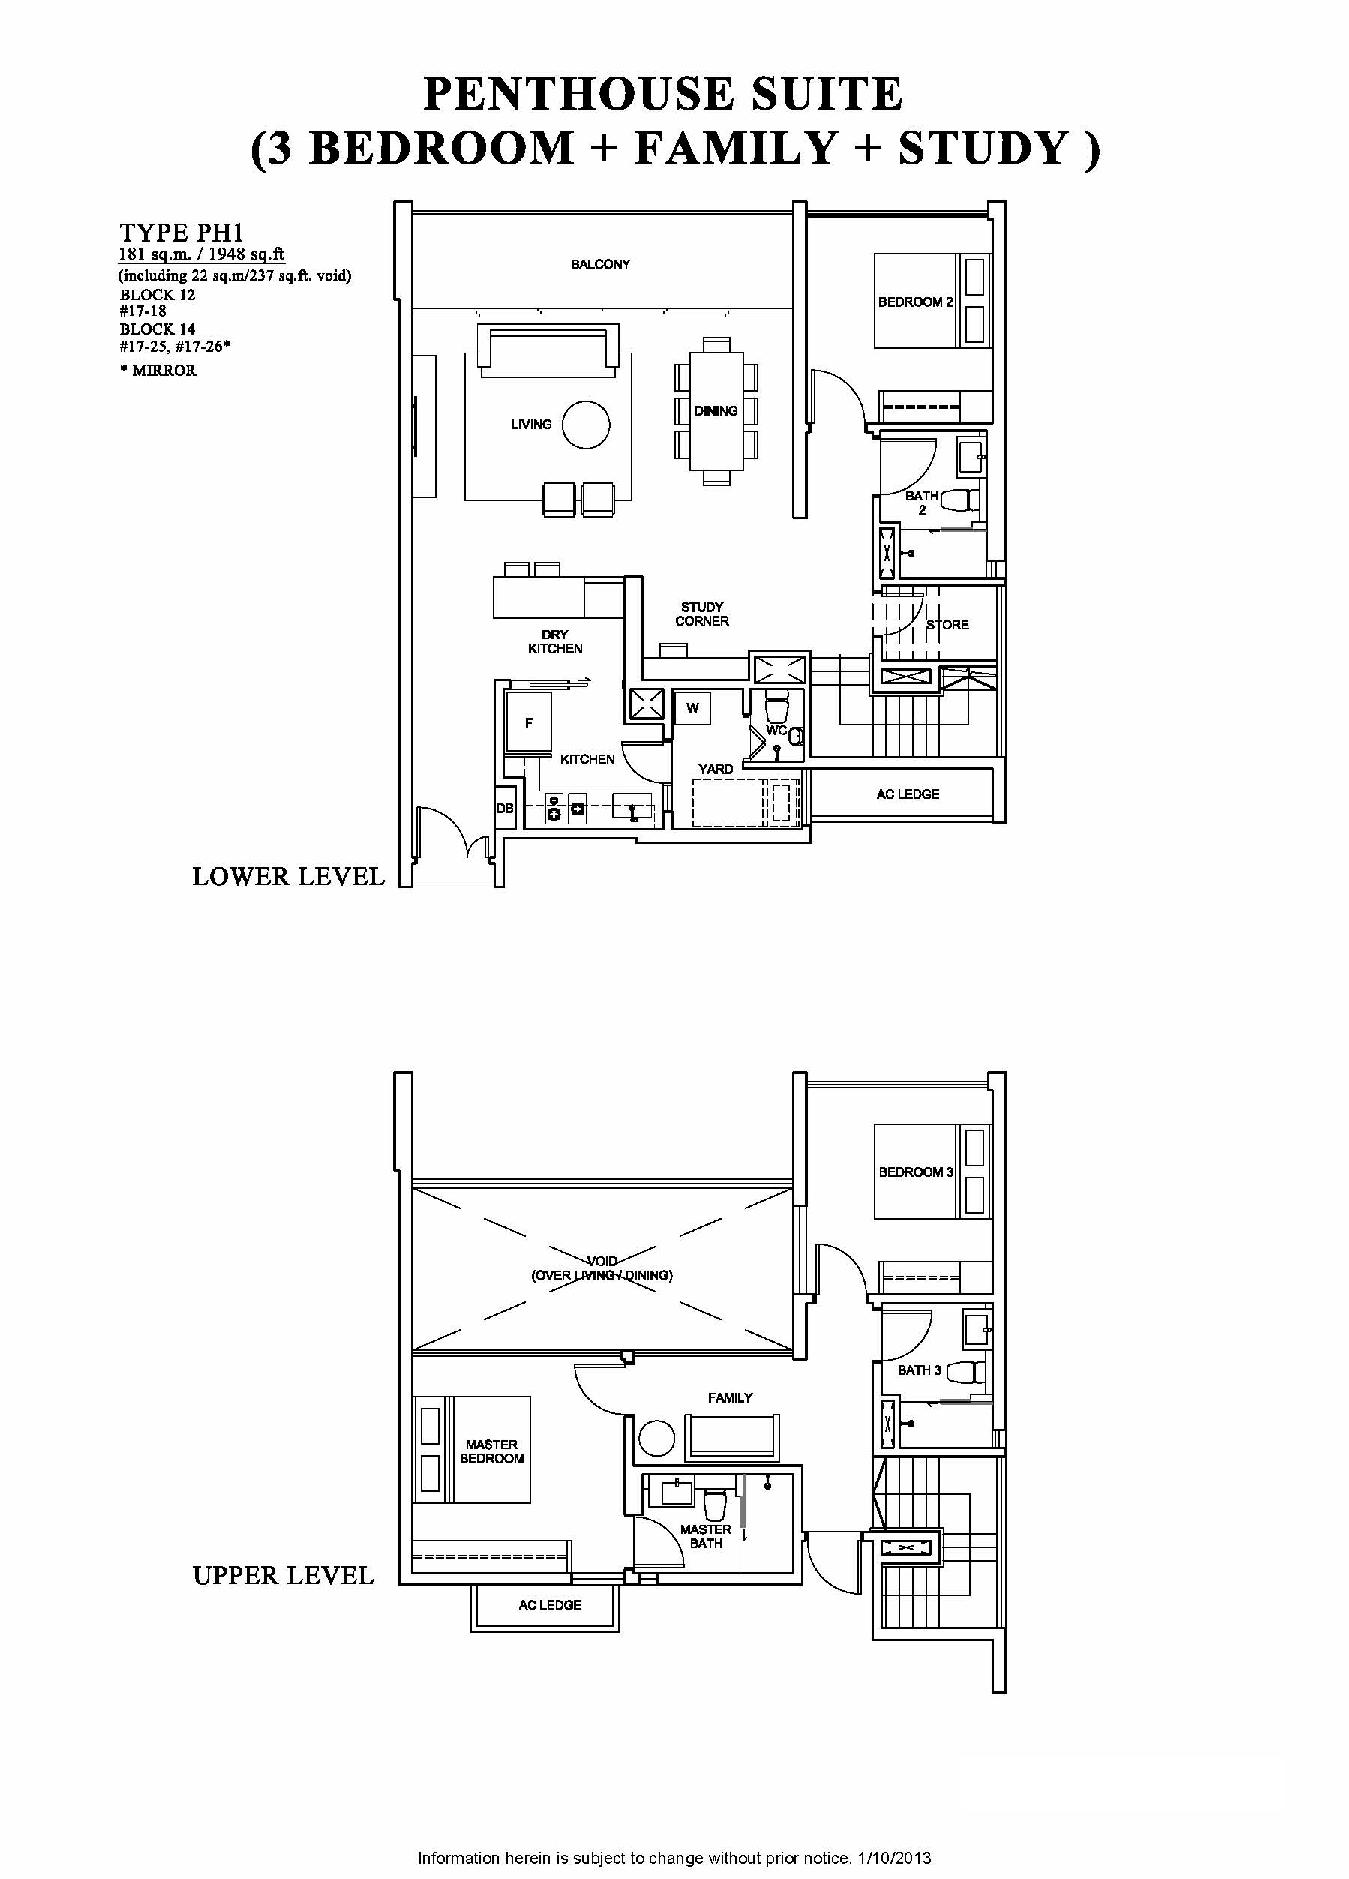 The Venue Residences 3 Bedroom + Family + Study Penthouse Suite Floor Plan Type CP1